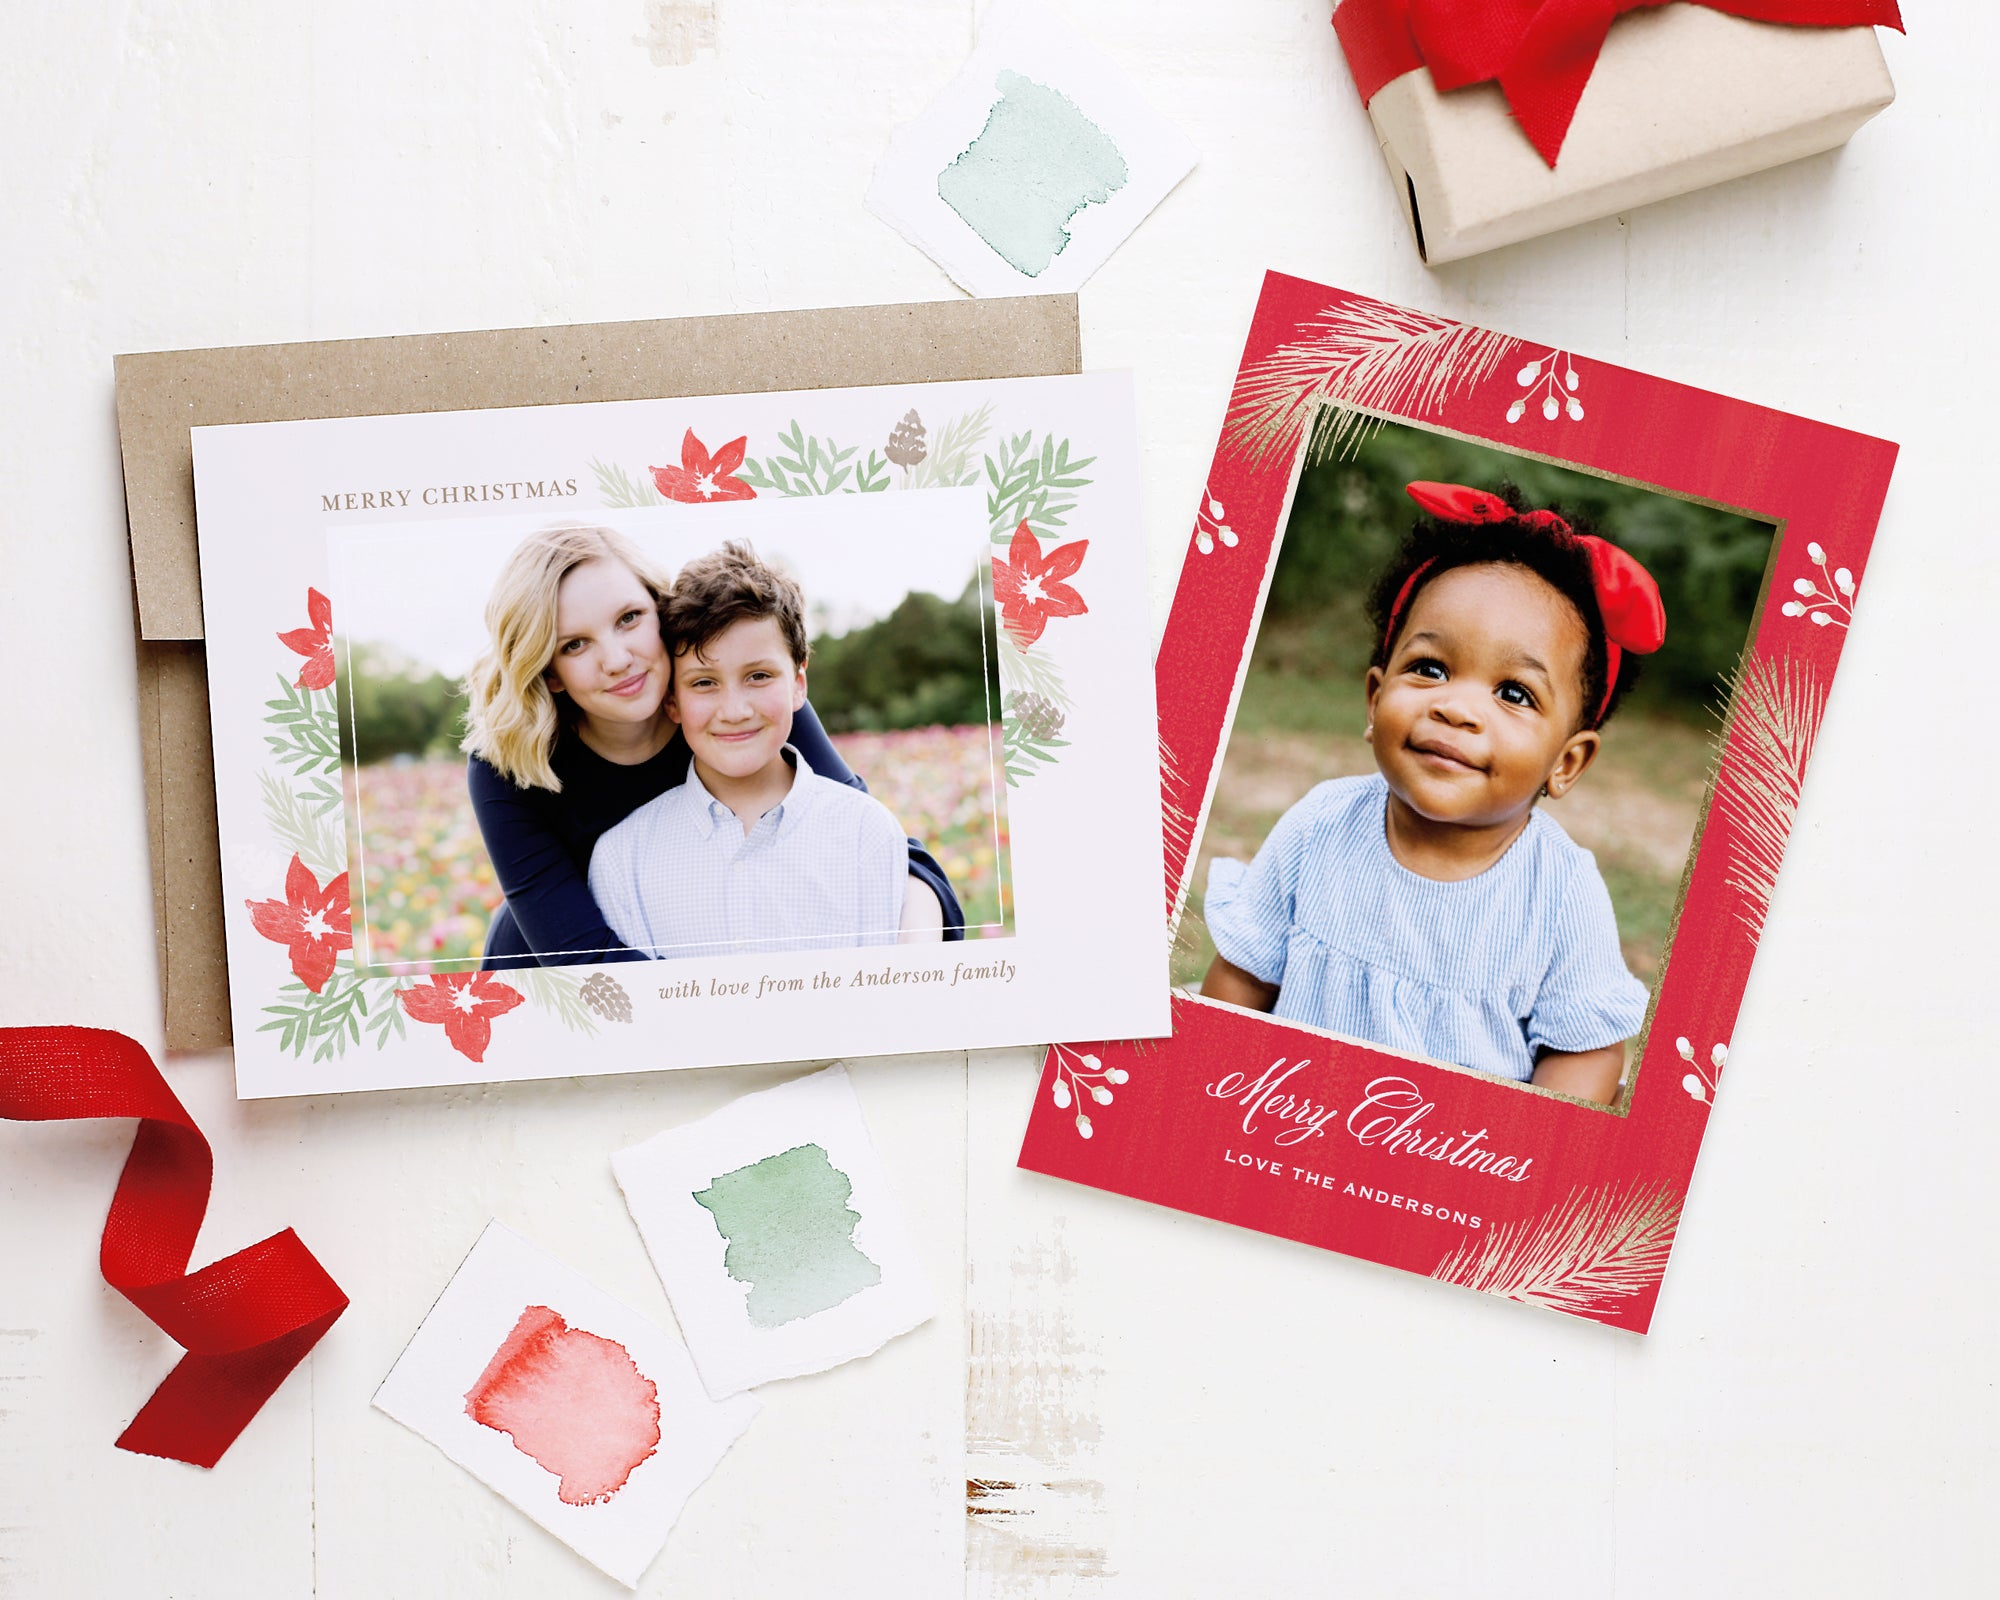 Custom Holiday Cards for Your Personalized Christmas Gifts